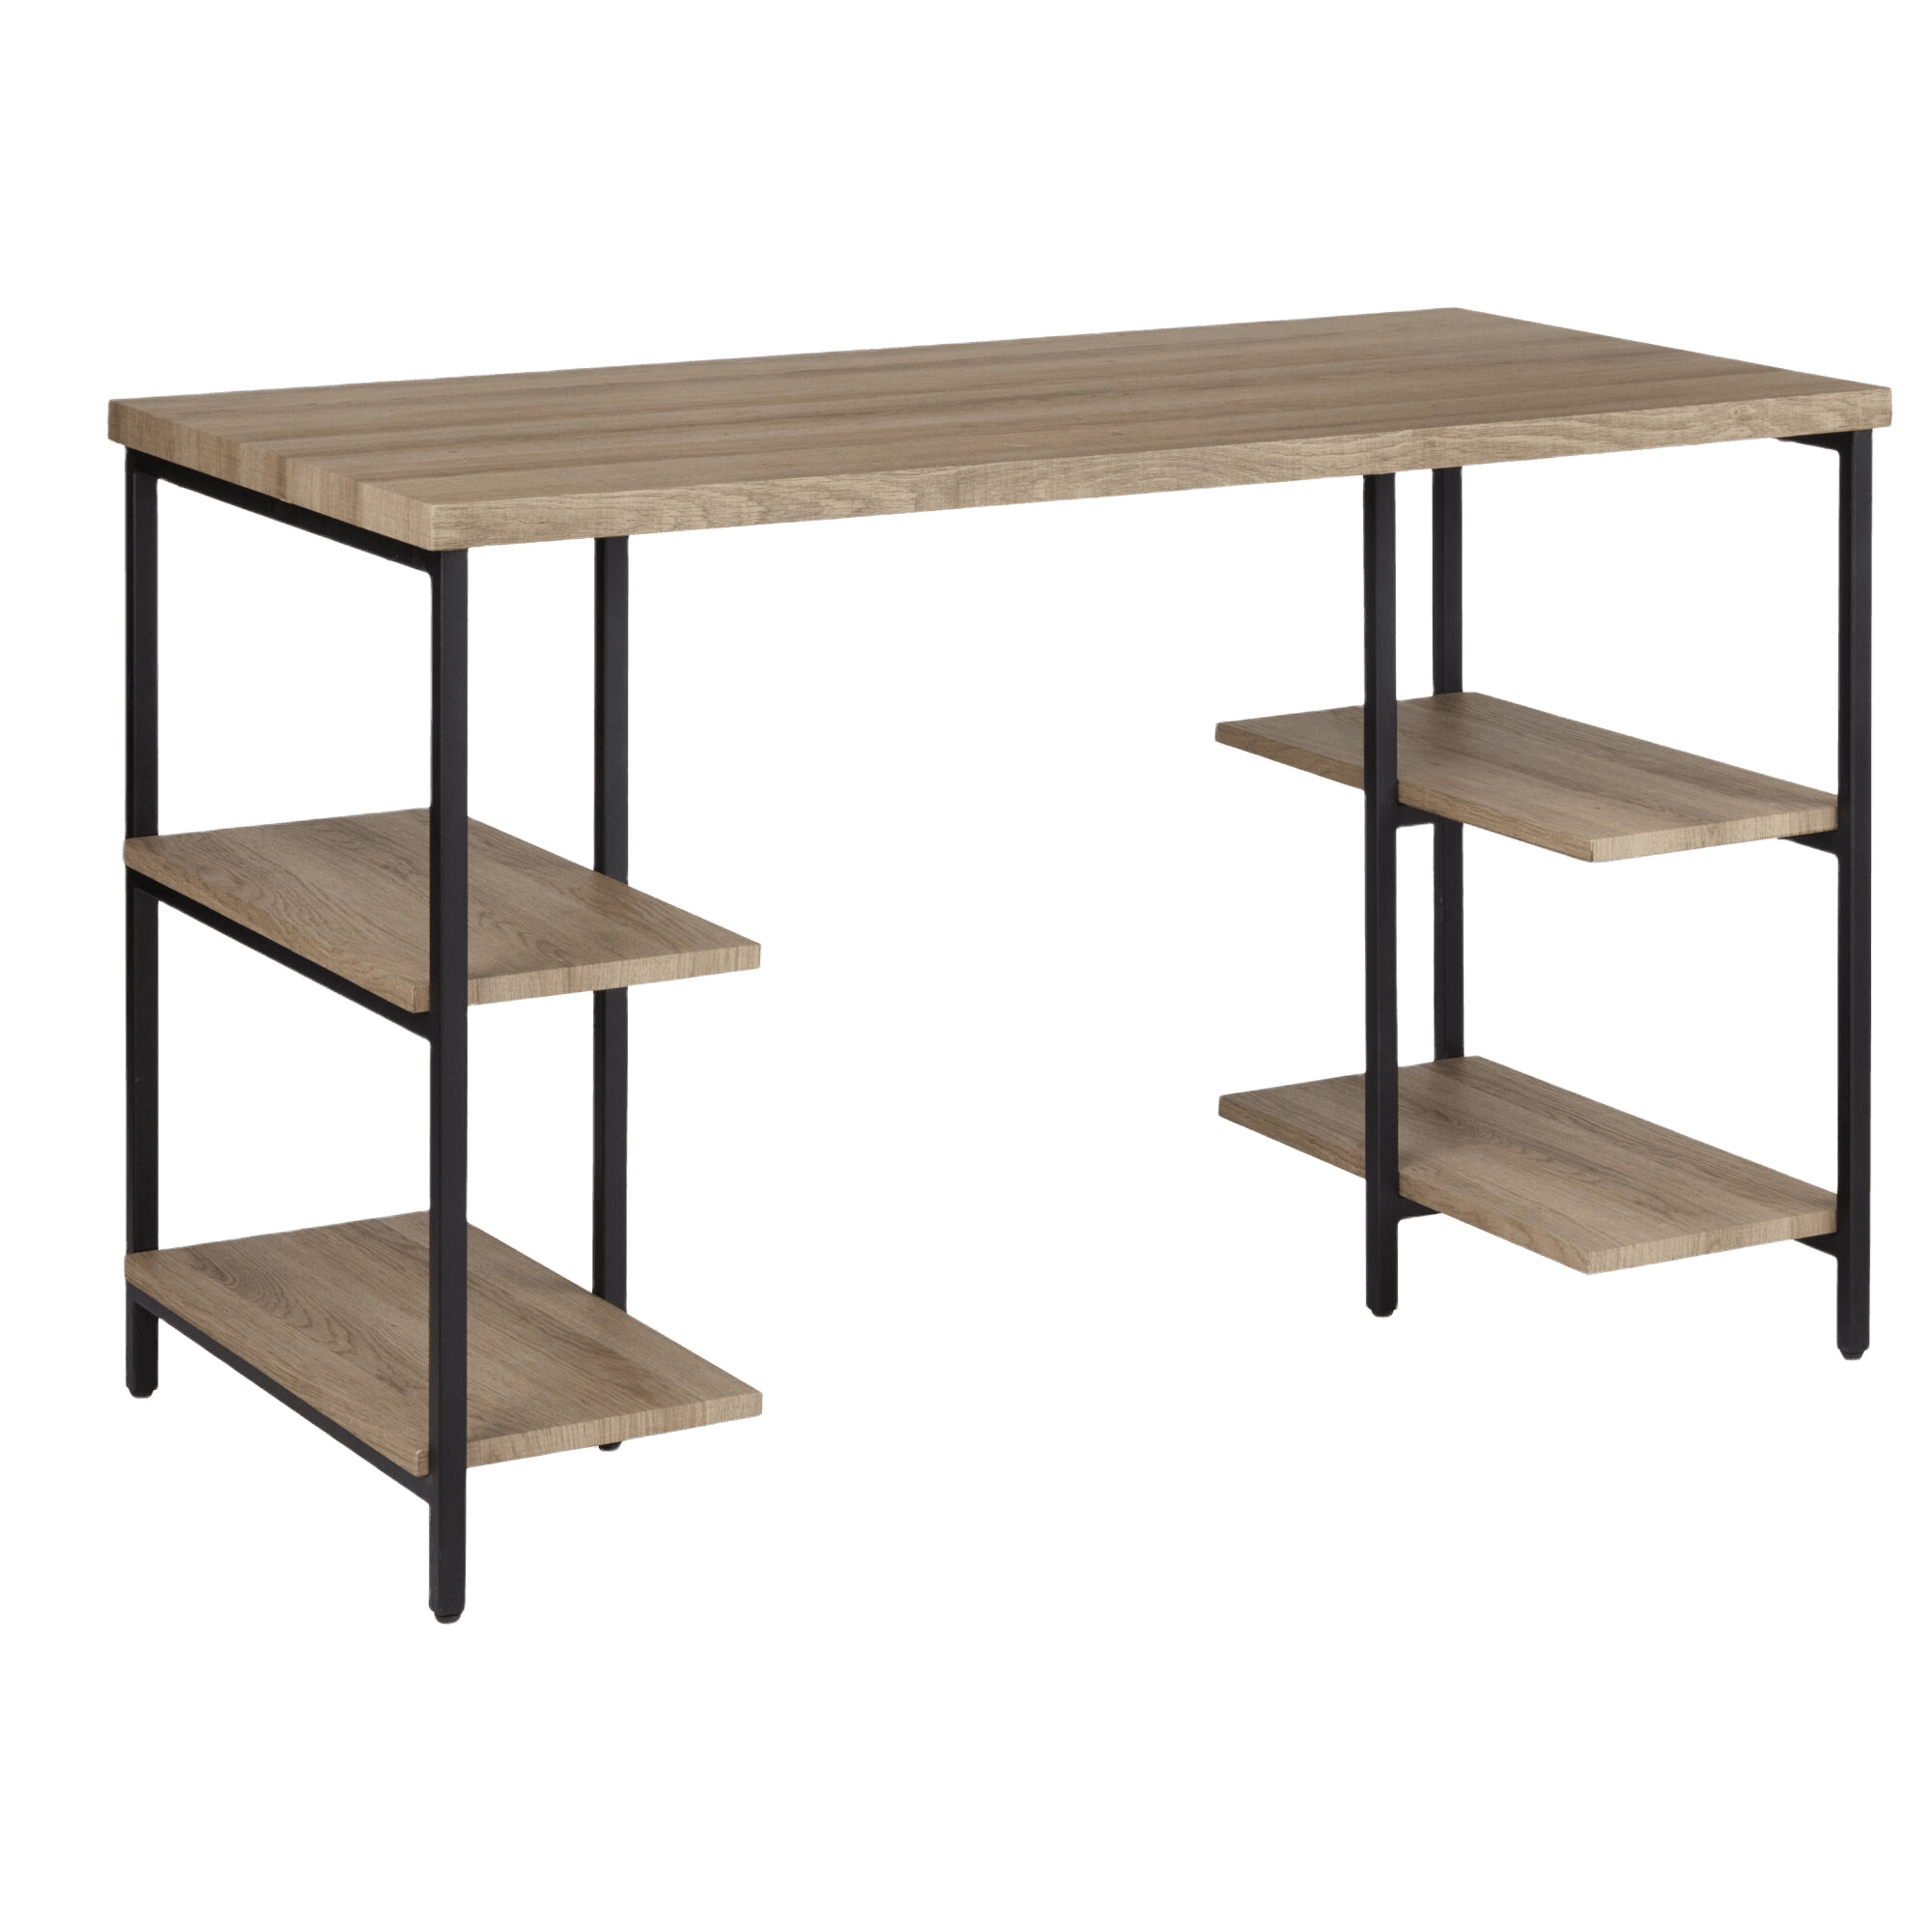 Natural Wood and Black Metal Table with 4 Shelves